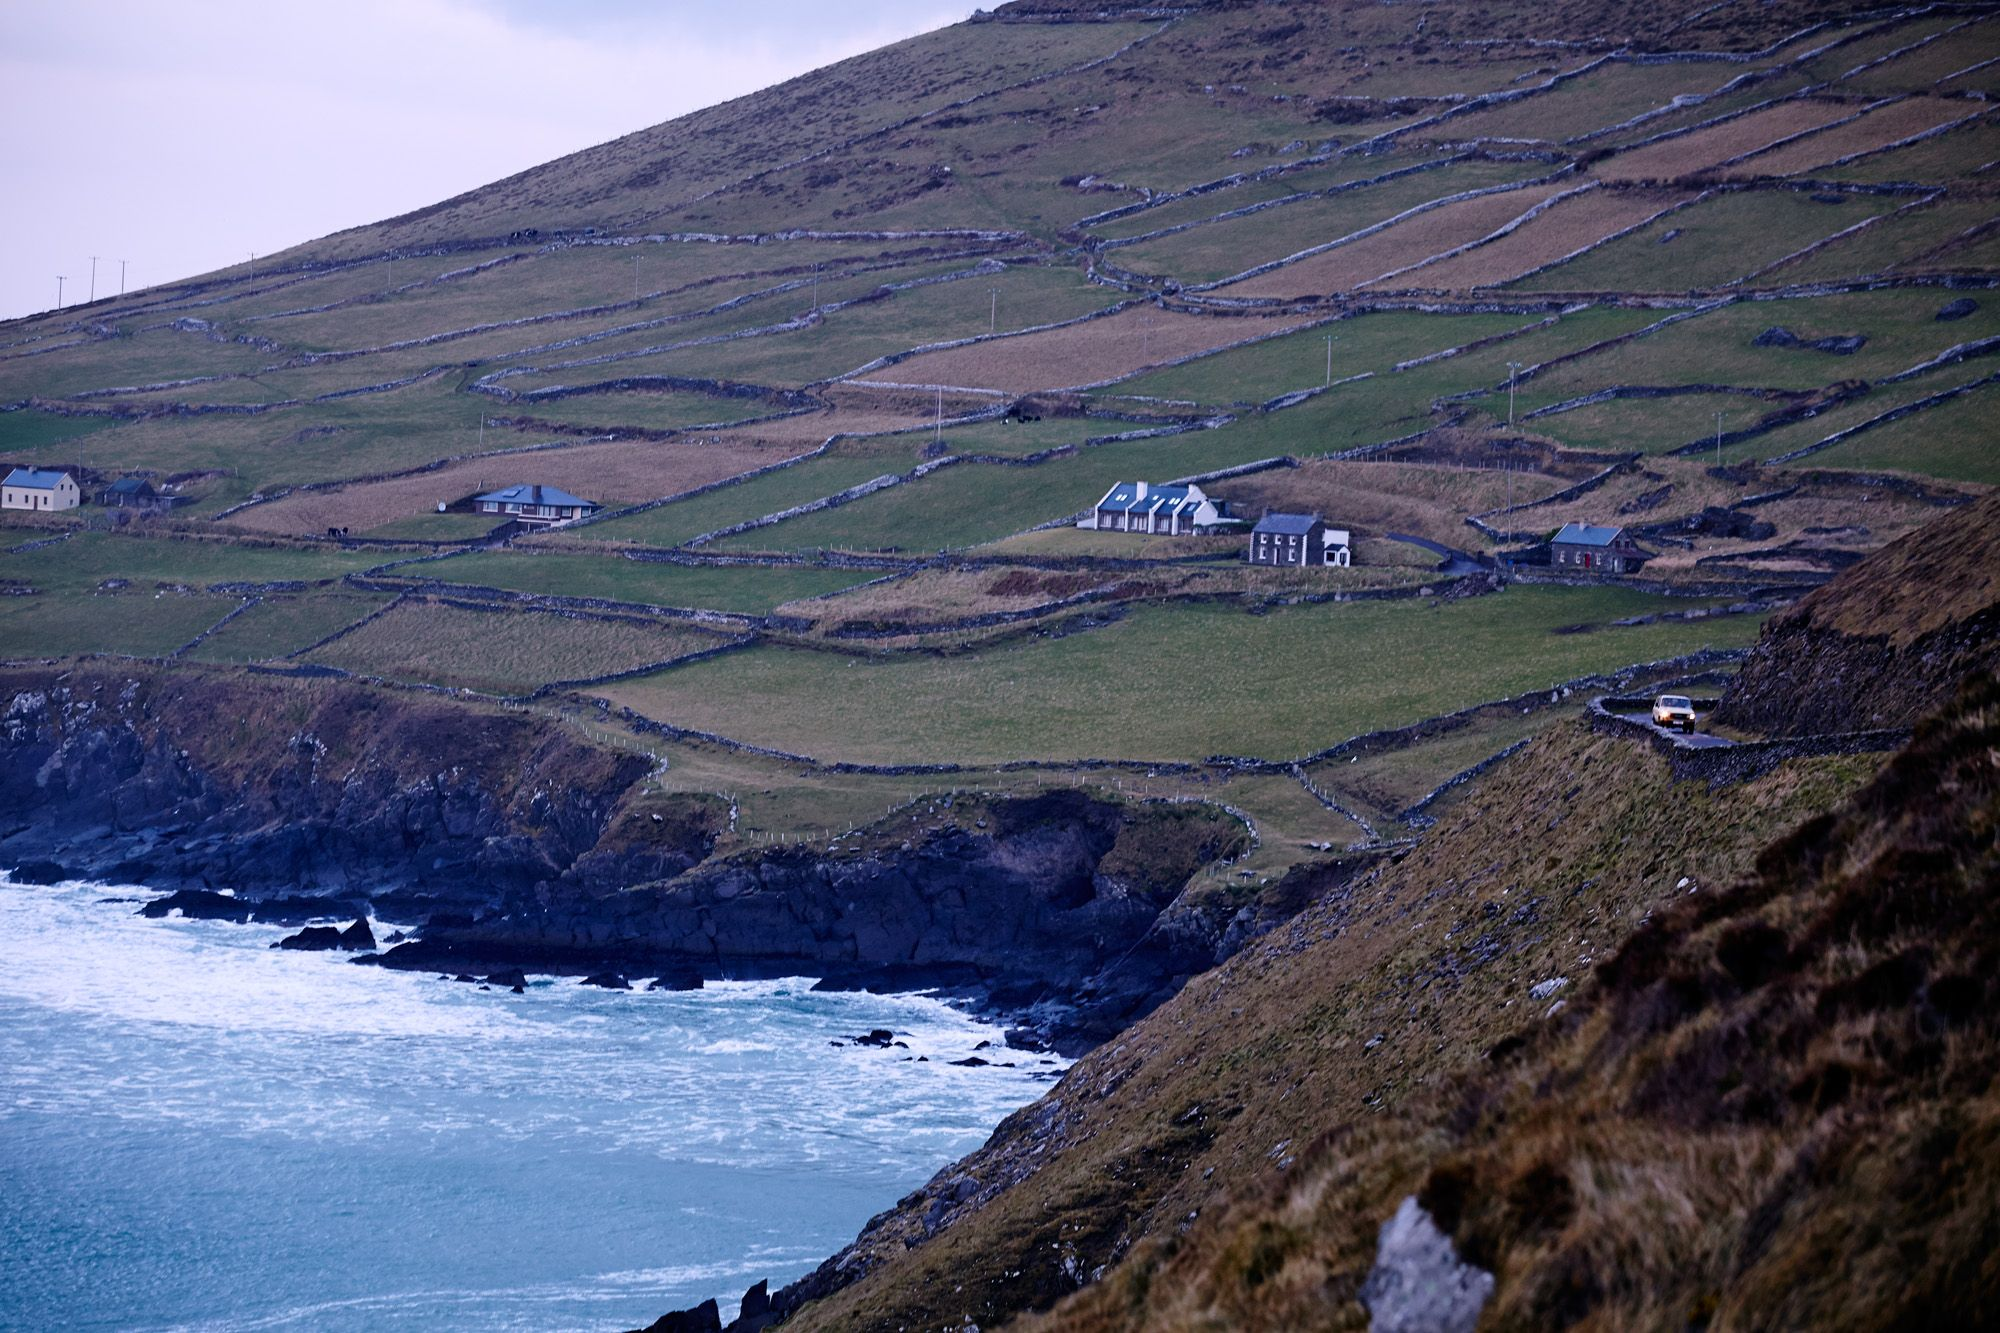 Come get lost with us as we explore the coastline of Ireland: http://blog.roxy.com/2014/08/surf-stay-play-dingle-ireland/